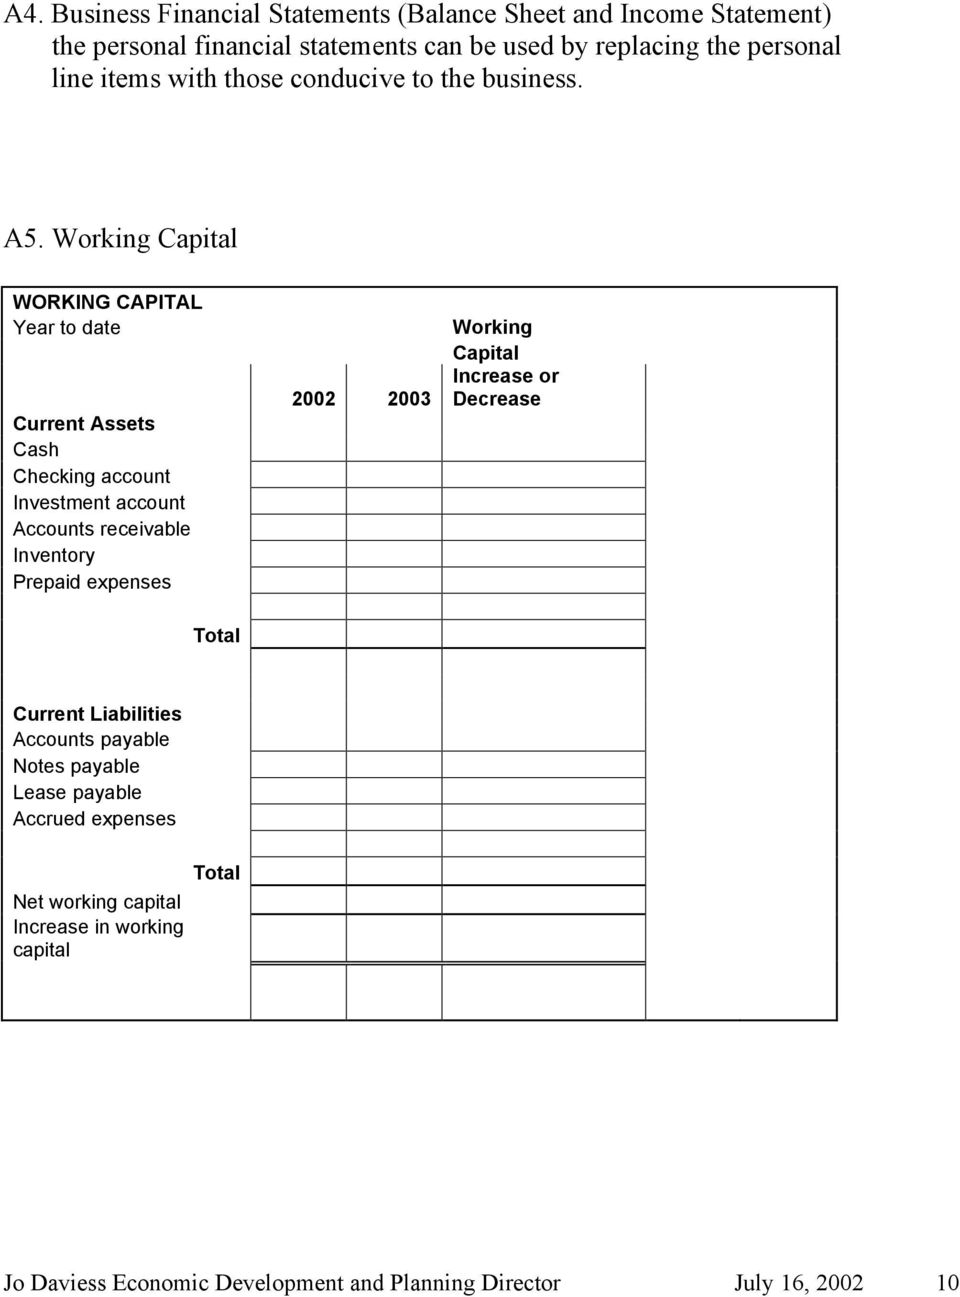 Working Capital WORKING CAPITAL Year to date Current Assets Cash Checking account Investment account Accounts receivable Inventory Prepaid expenses